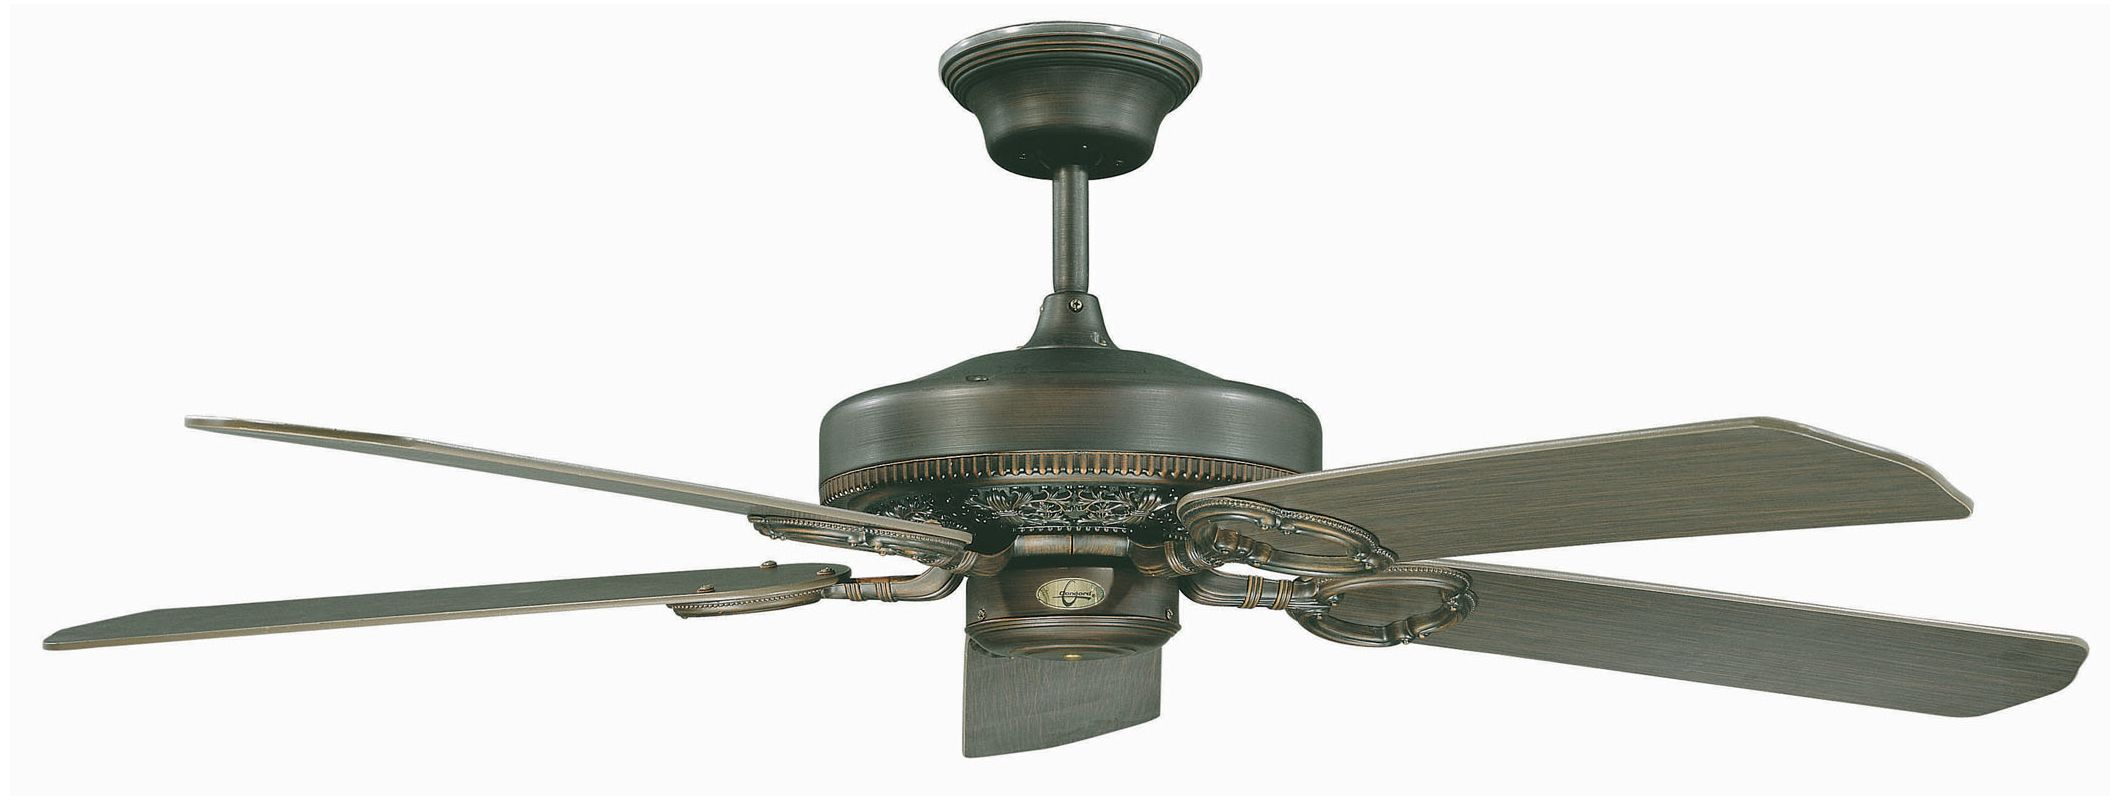 "Concord 52FQ5 5 Blade Indoor 52"" Ceiling Fan with Blades Included from"